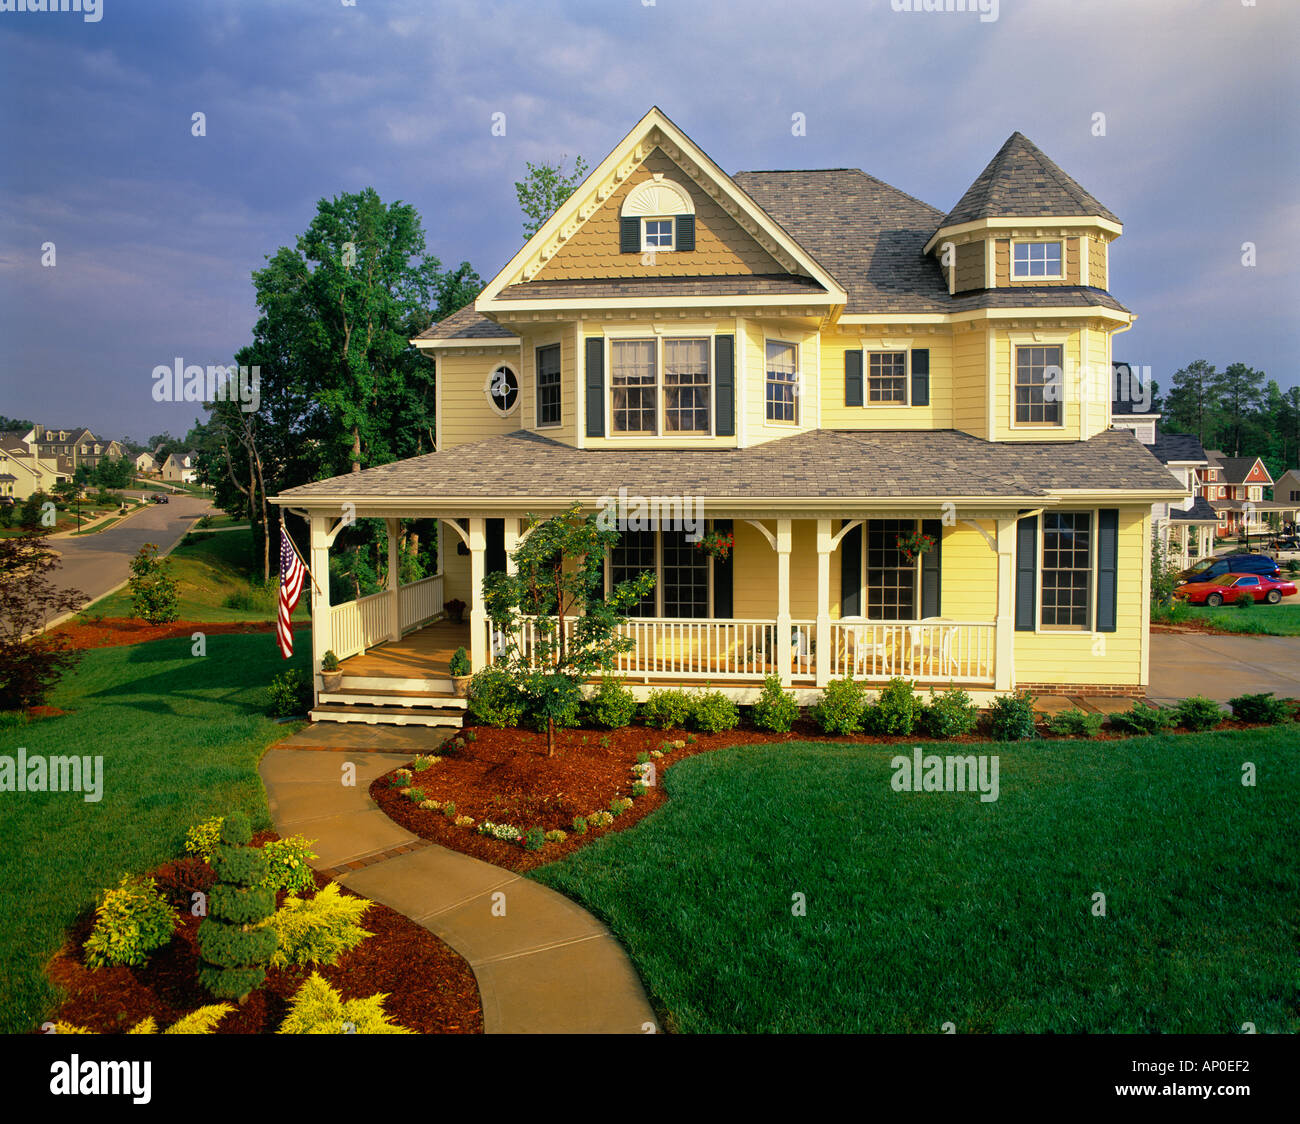 Large Two Story Yellow Victorian House With Blue Shutters And A Large Porch - Stock Image